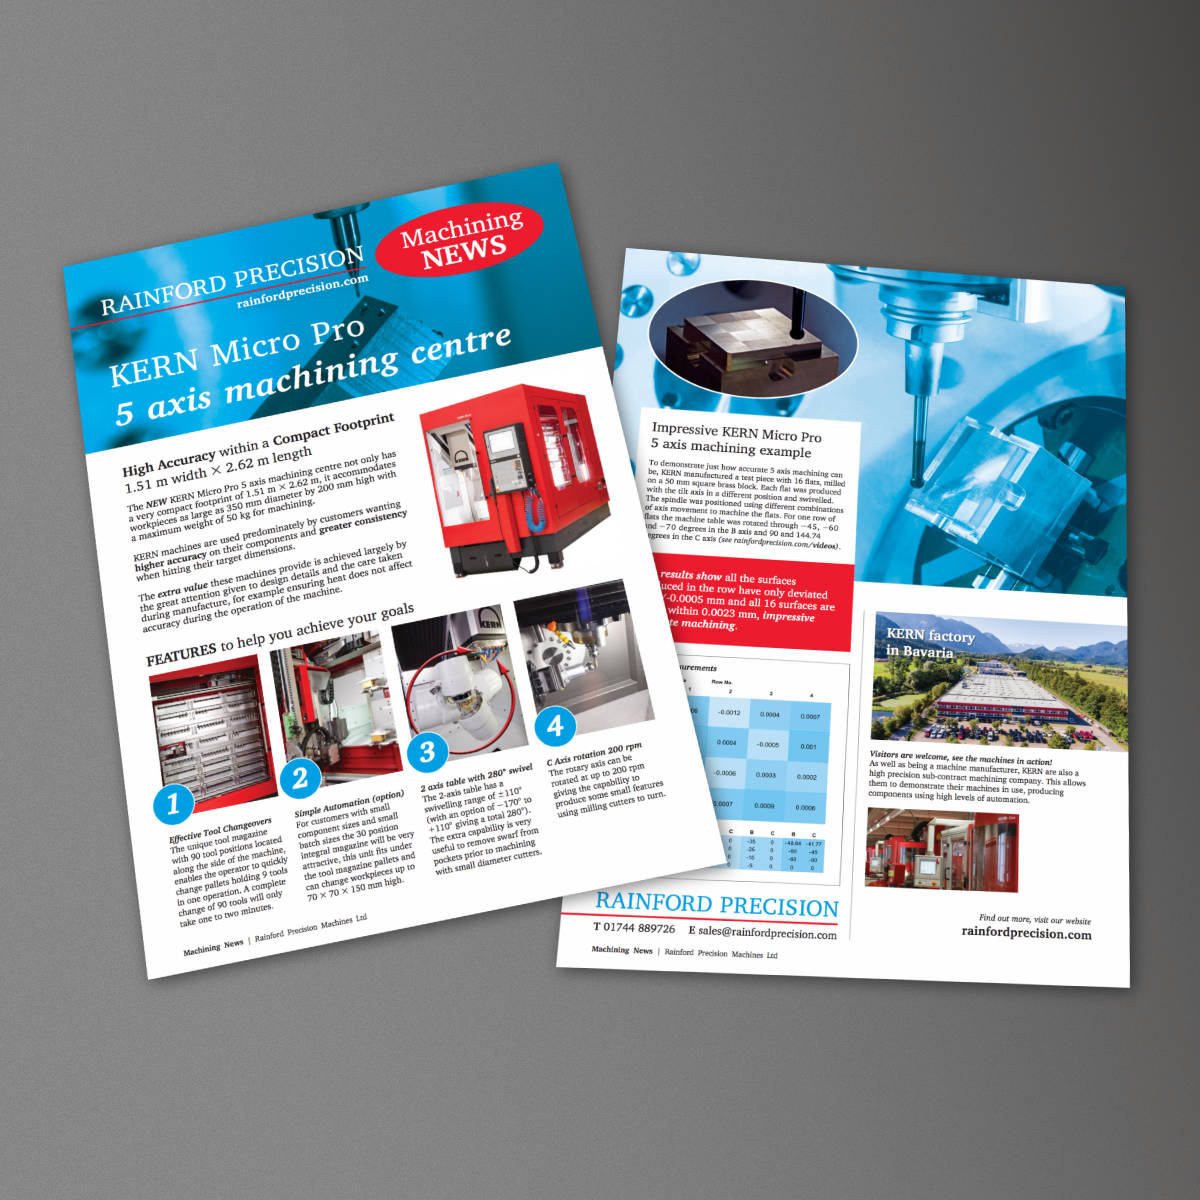 Rainford Precision Machining News, Kern Micro Pro Leaflet, print design by Orangebox